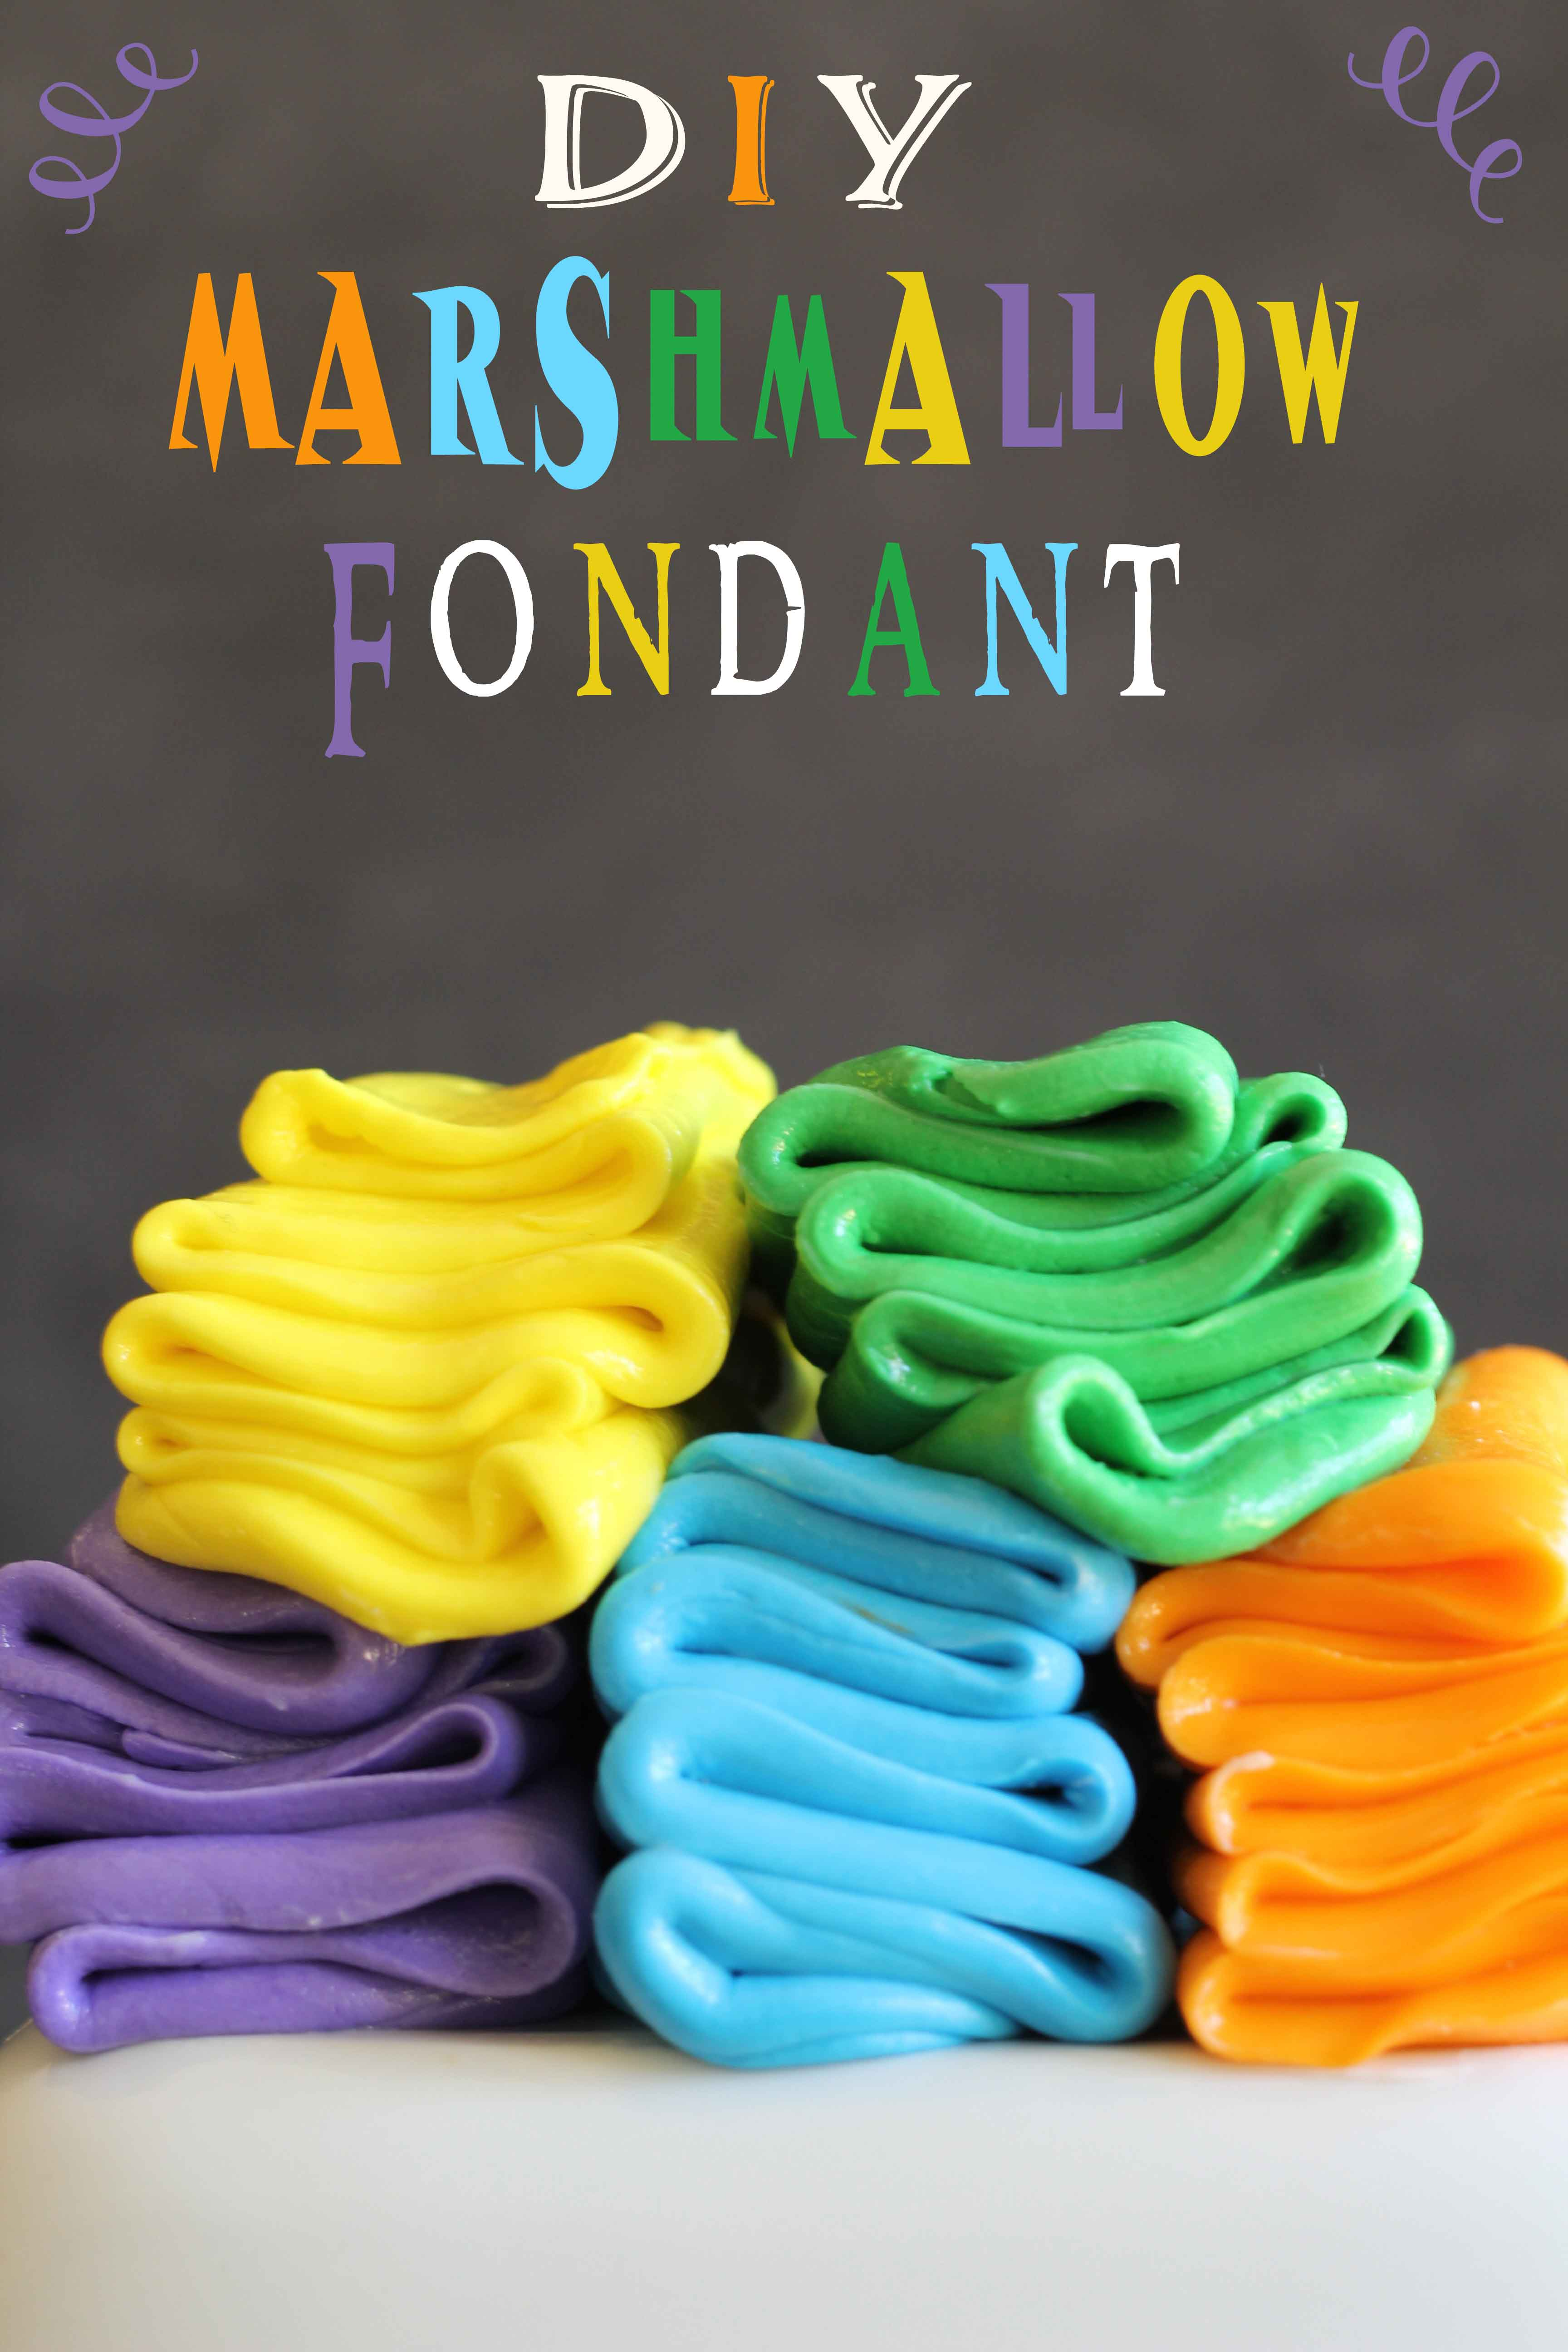 DIY Marshmallow Fondant {Guest Post